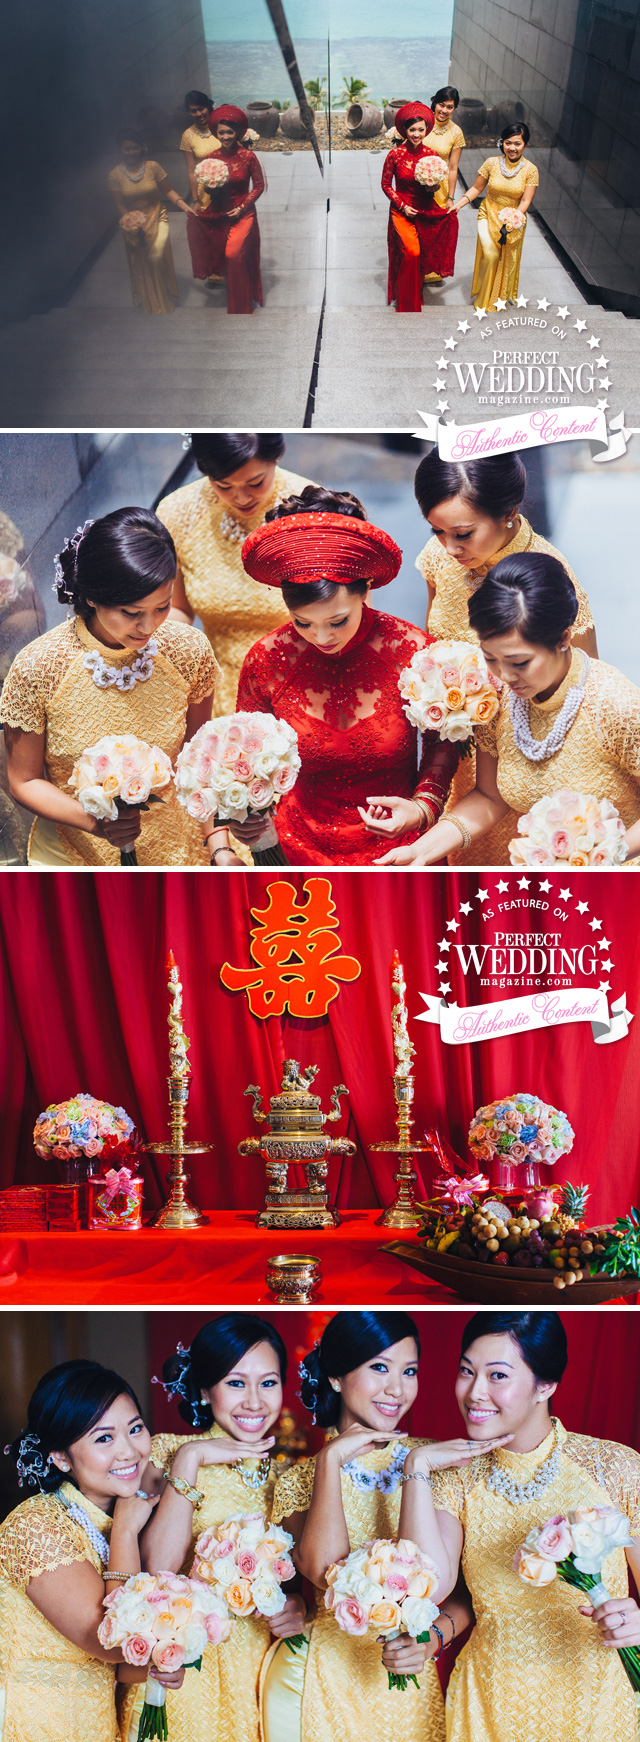 Liam Collard, Luxury weddings in Thailand